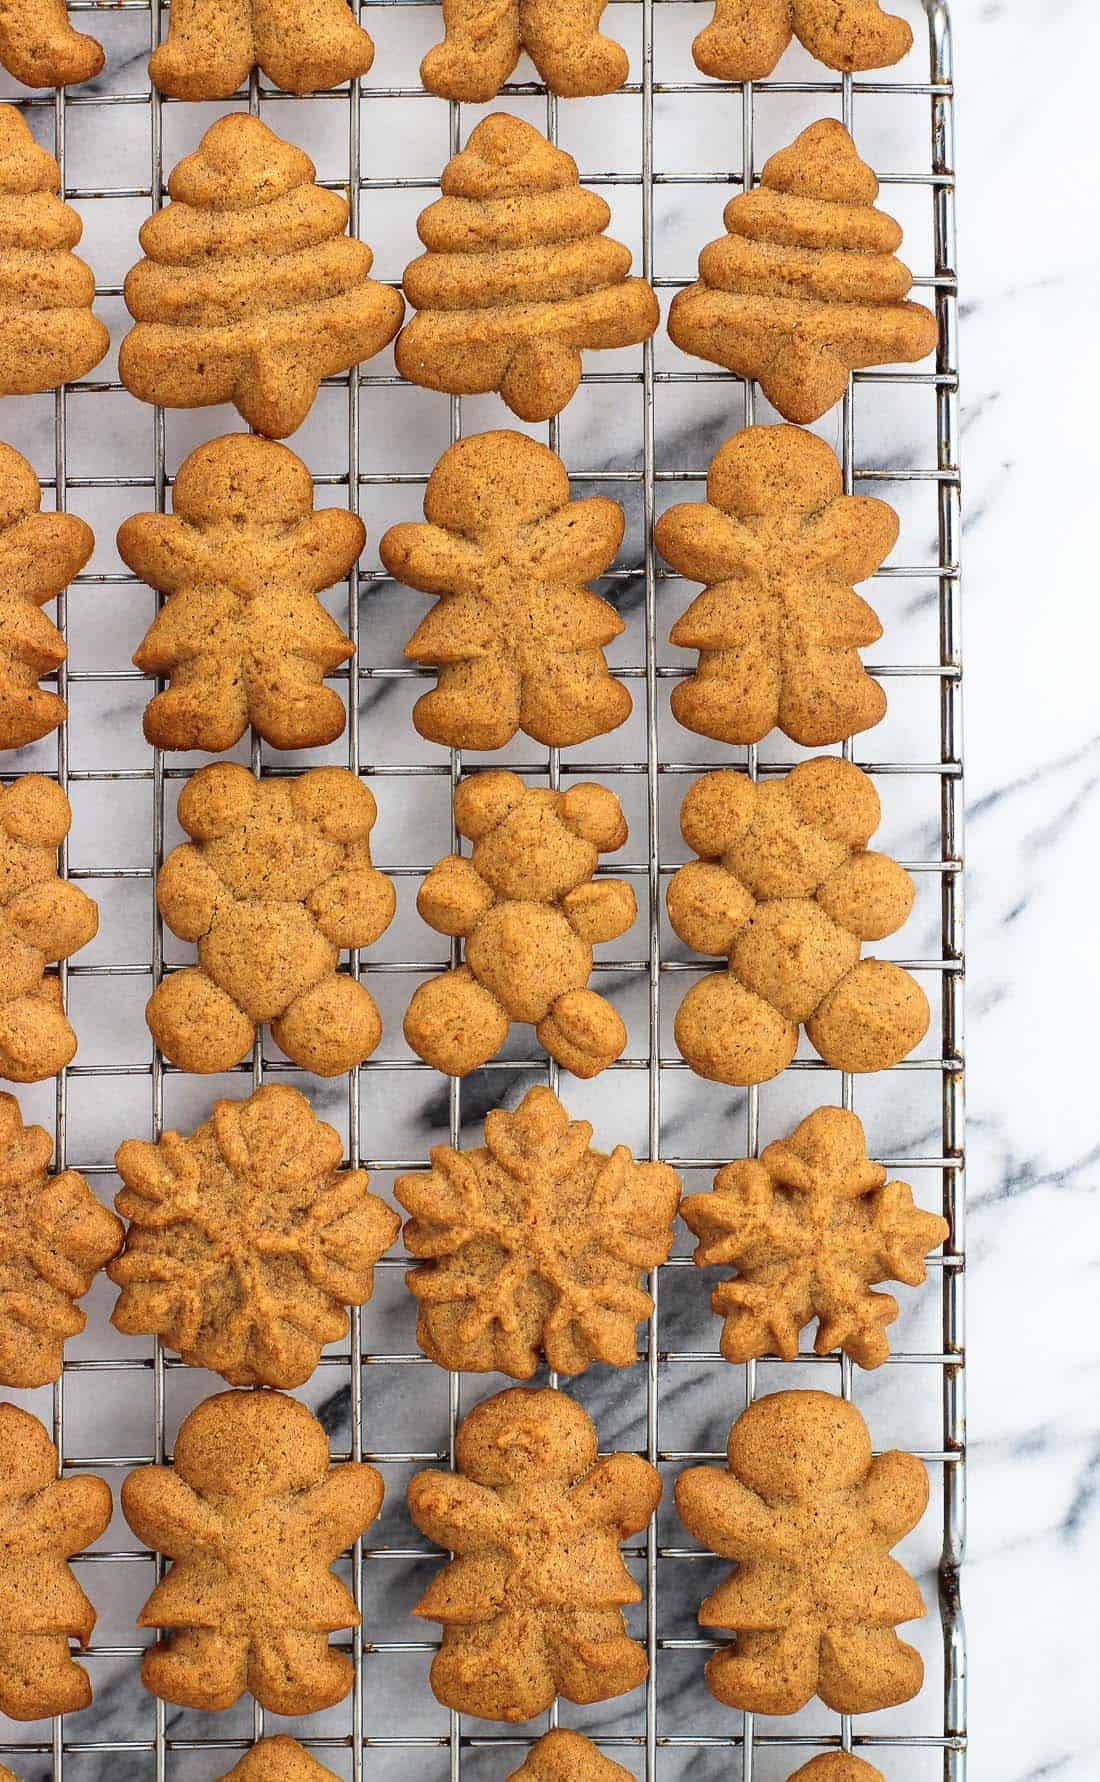 Gingerbread spritz cookies are buttery and spiced with classic gingerbread flavors in this easily shaped version of gingerbread cookies. This spritz cookie recipe makes more than enough for a crowd.